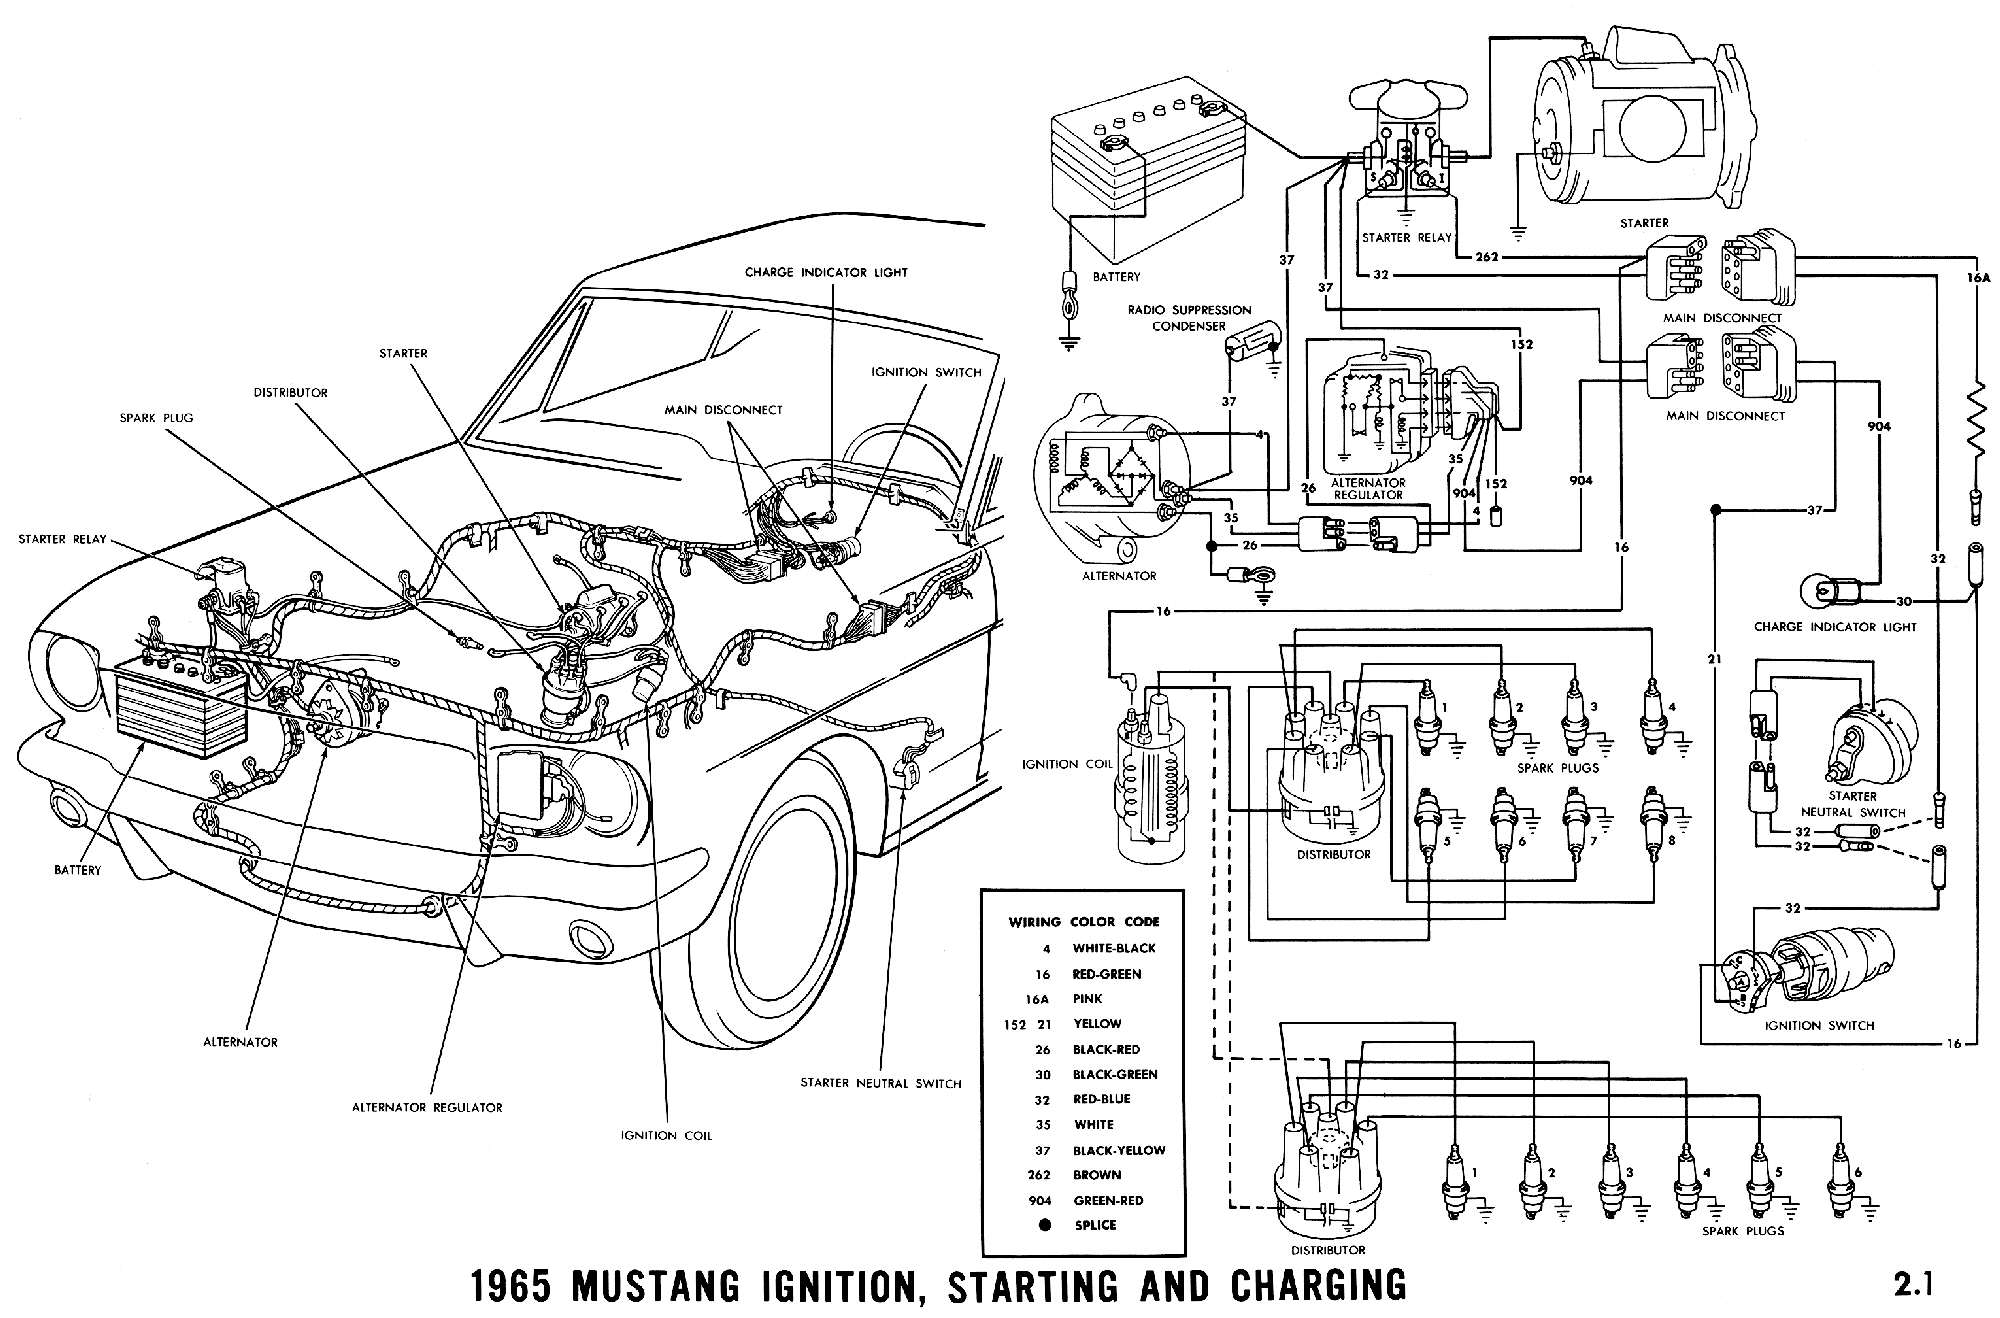 1965 mustang wiring diagrams average joe restoration rh averagejoerestoration com Wire Harness Tape Pioneer Harness Diagram